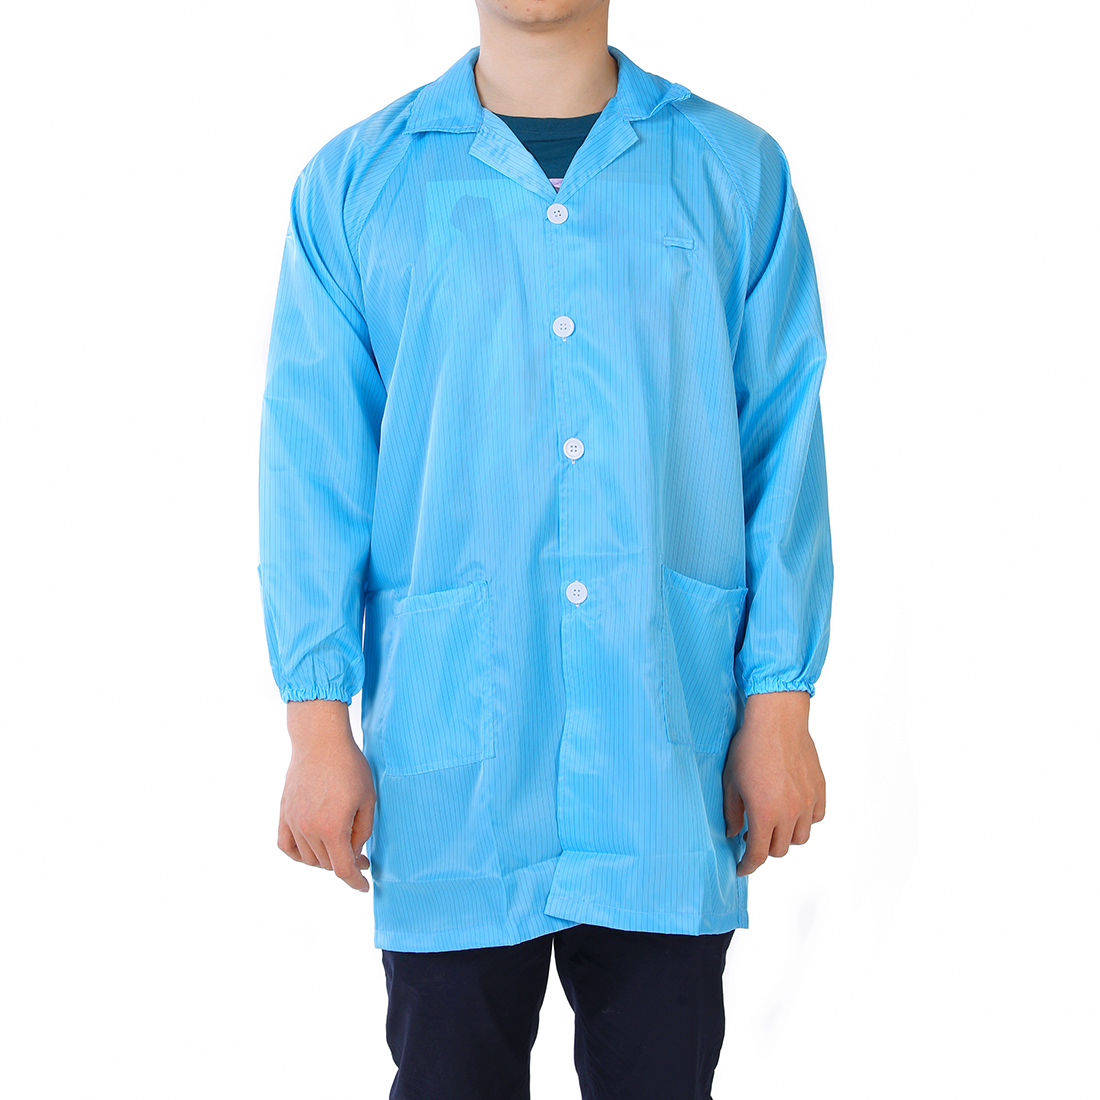 Anti Static Overalls Unisex ESD Lab Coat Button Up XL Blue